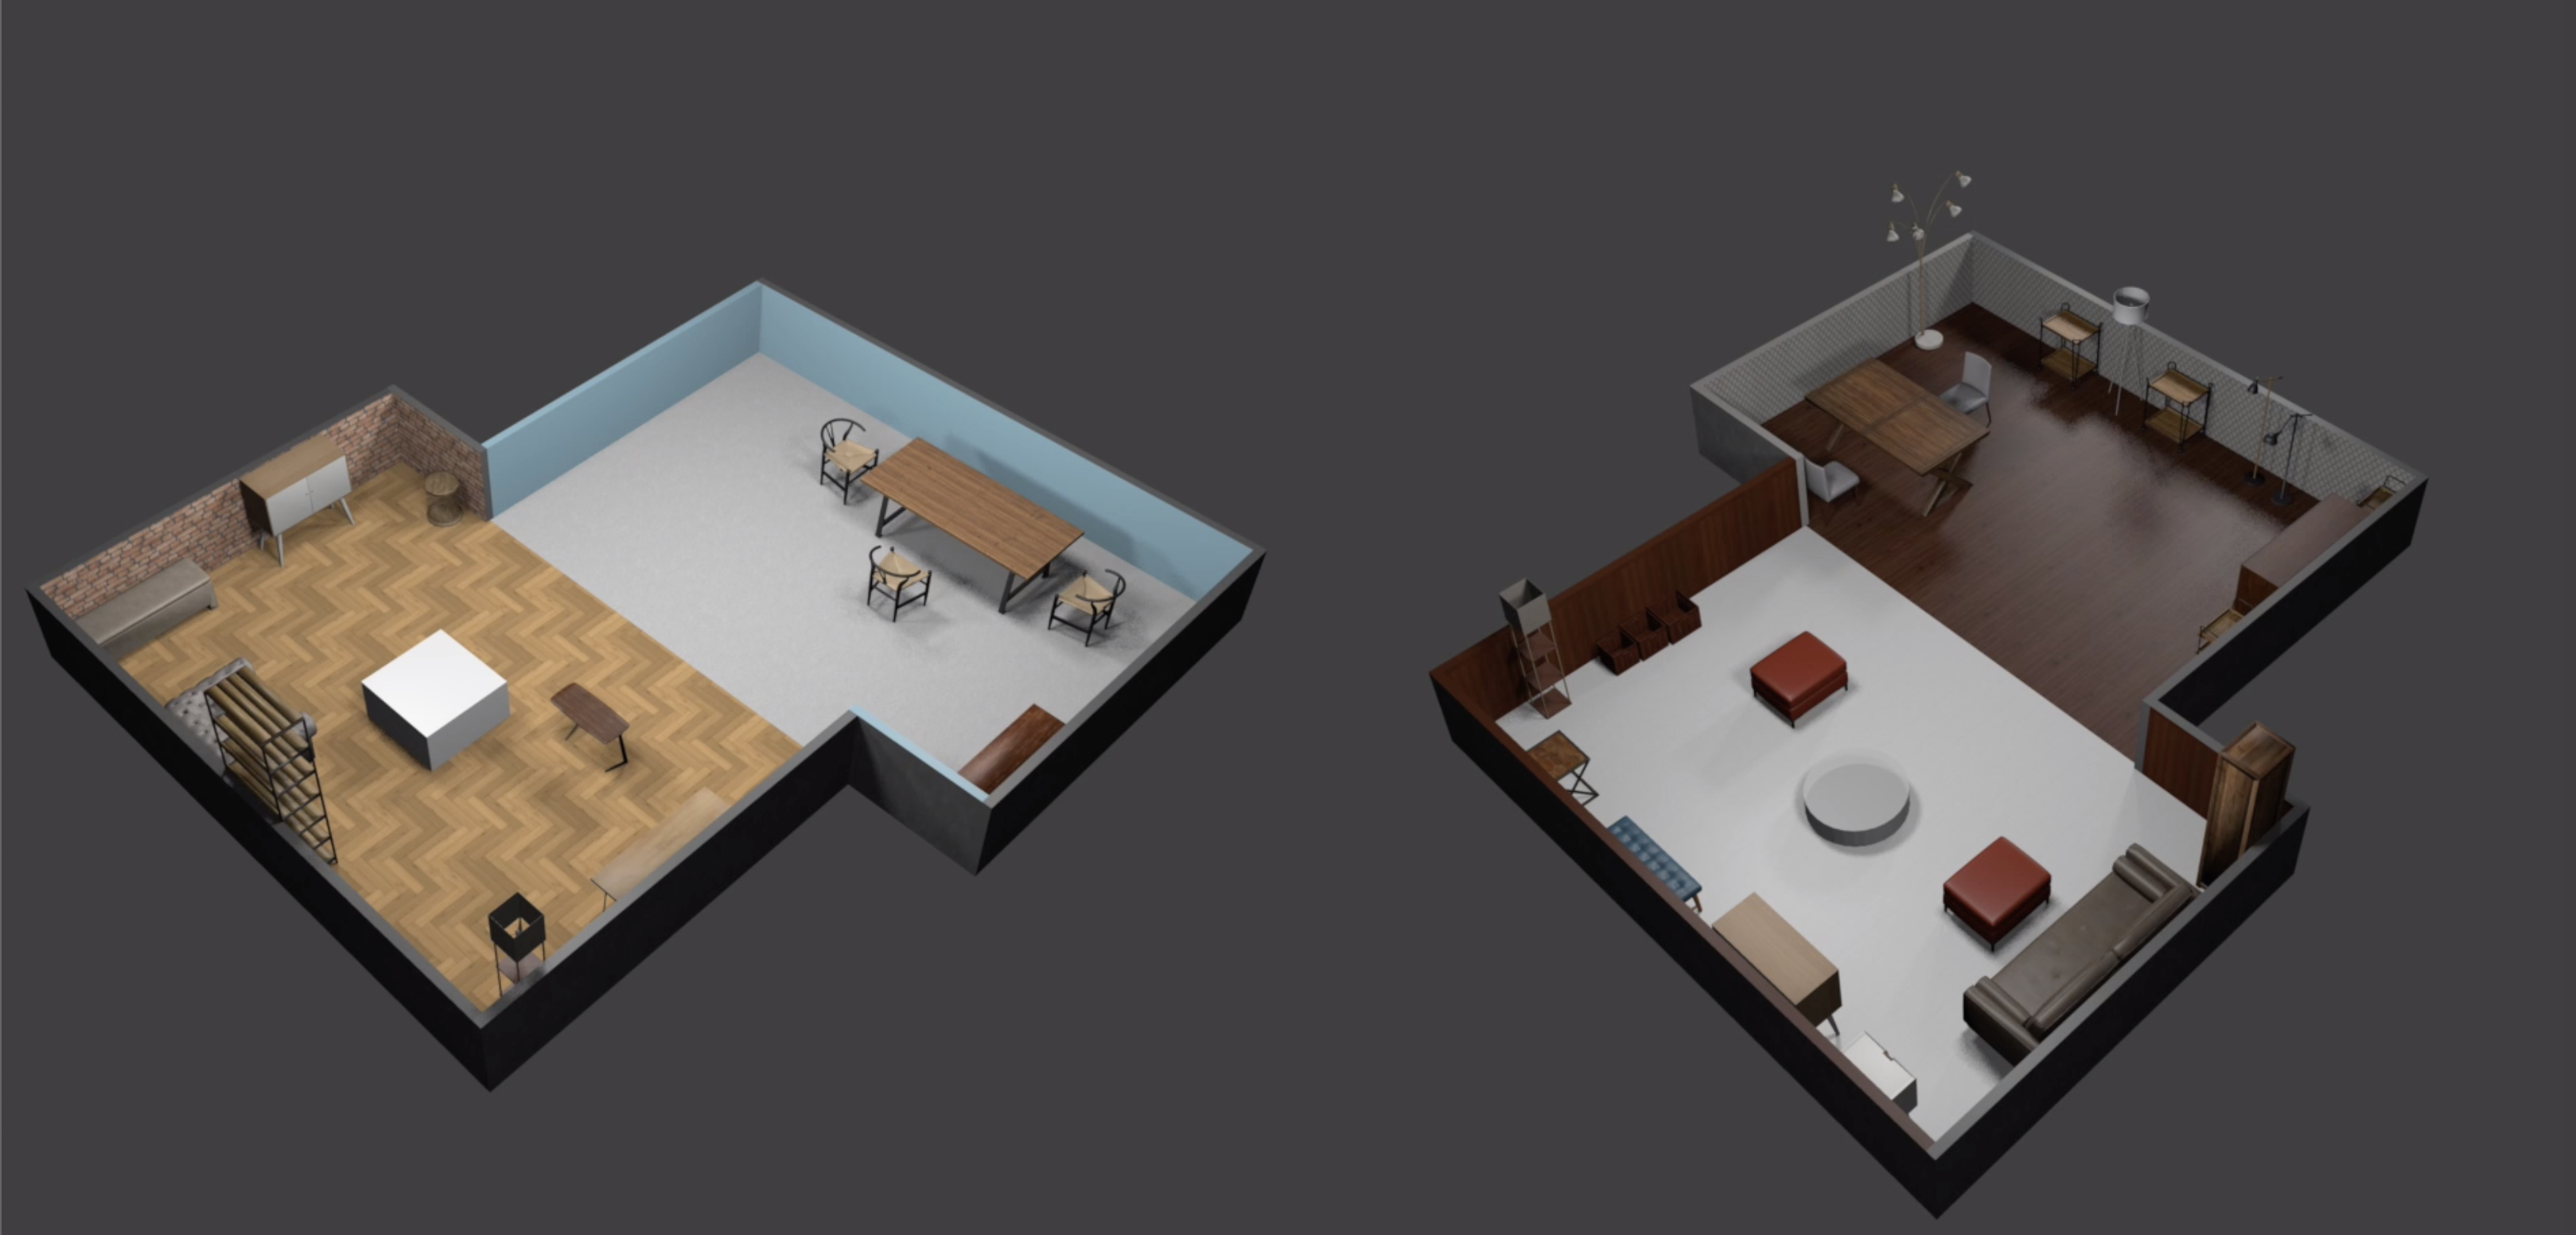 A side by side comparison of two different room configurations with AWS World Forge